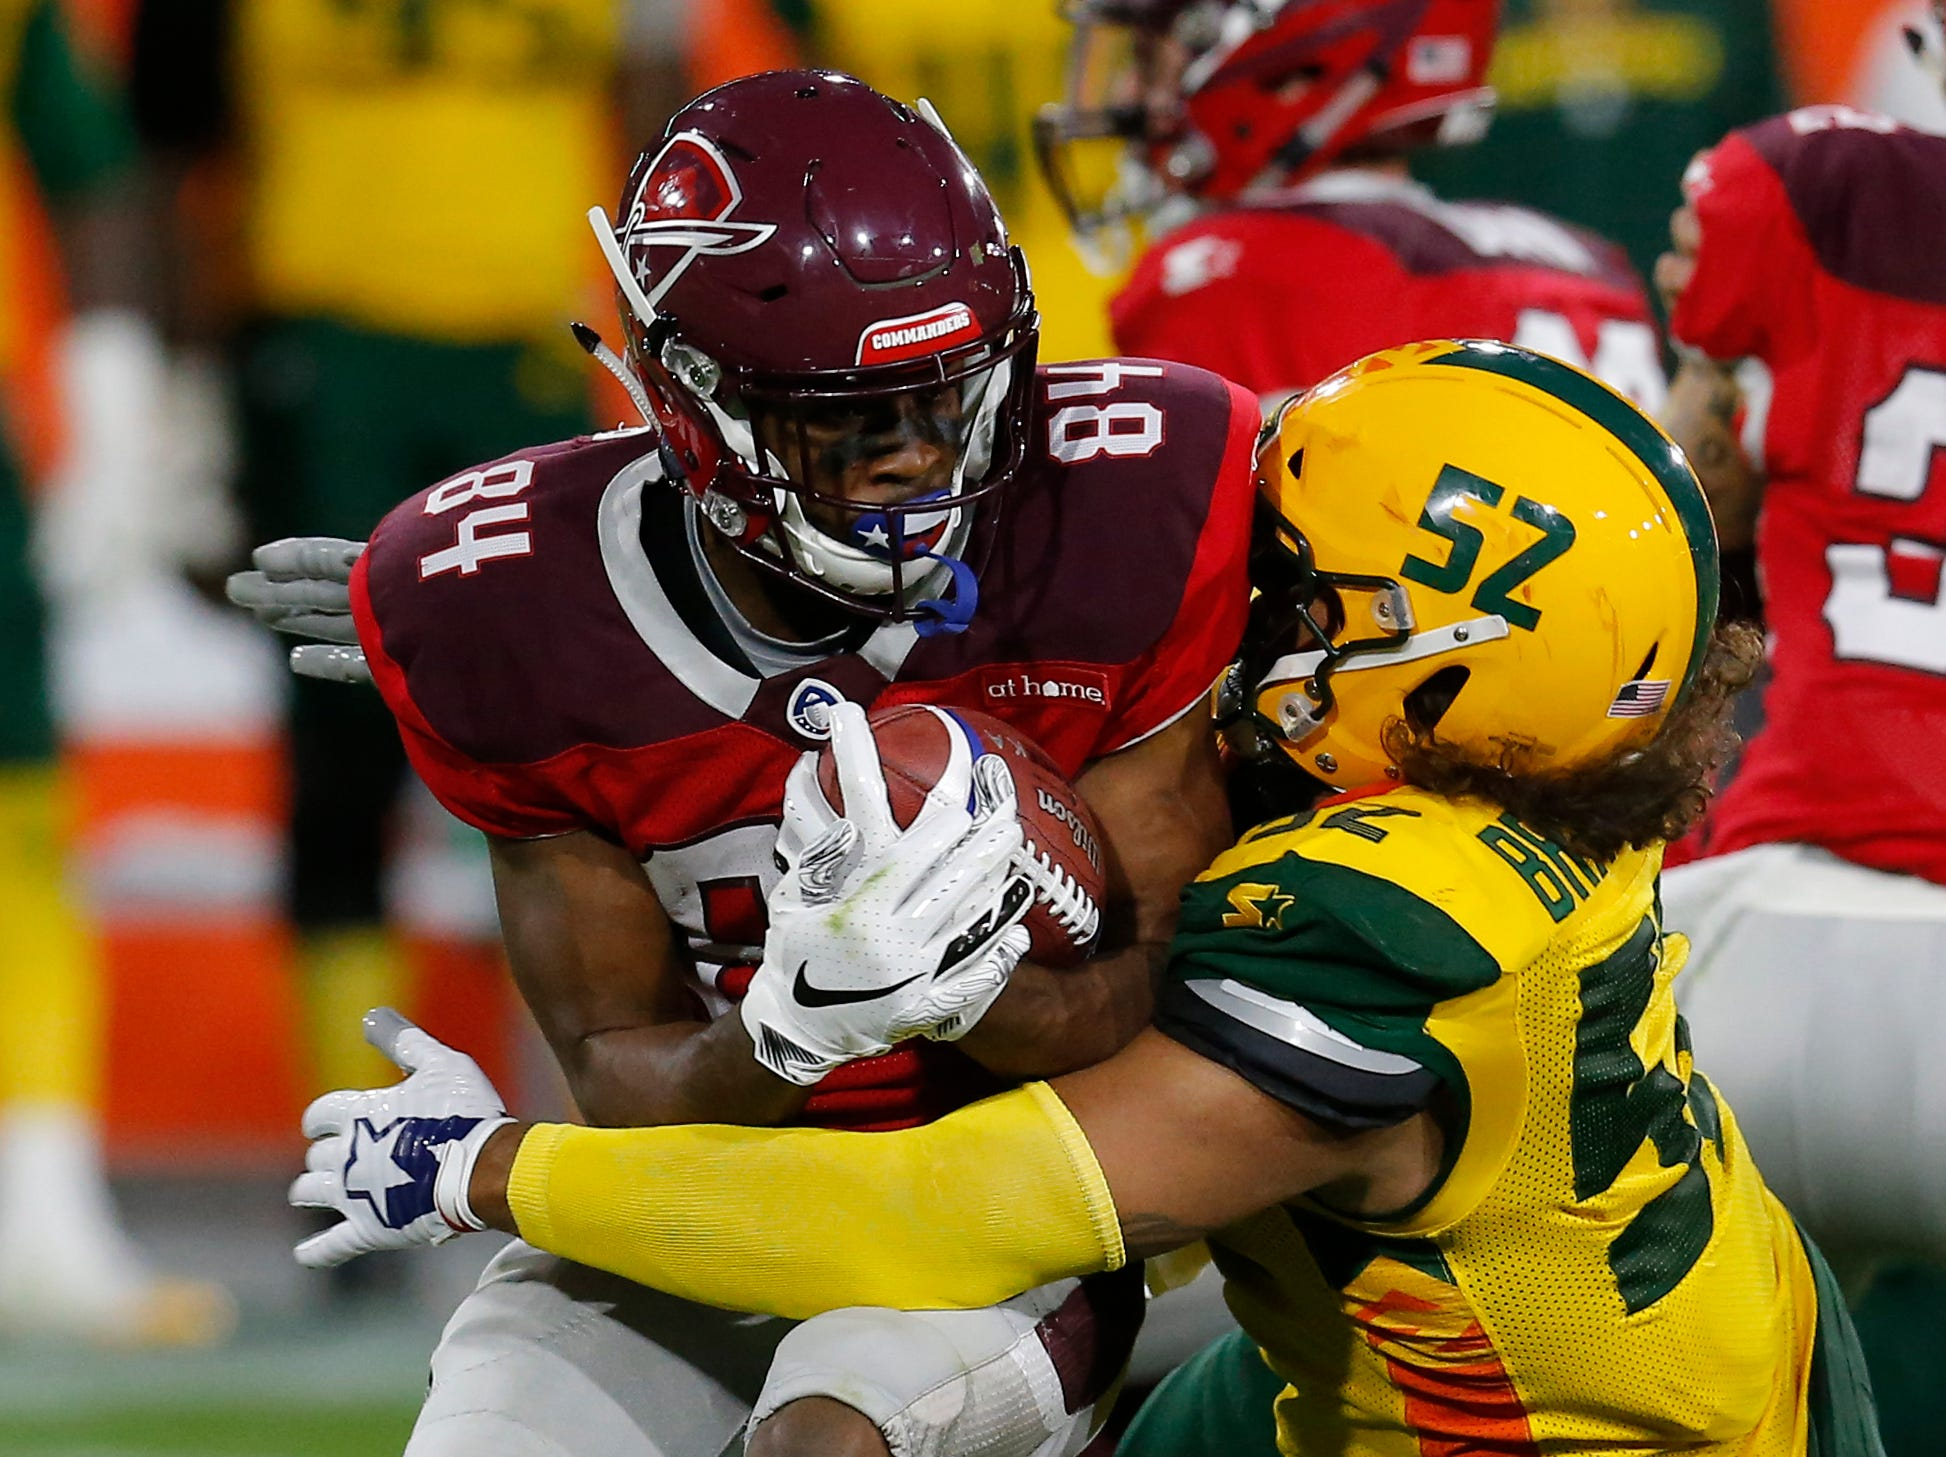 Arizona Hotshots linebacker Carl Bradford (52) stops San Antonio Commanders wide receiver Greg Ward, Jr. (84) from getting a first down in the second half during an AAF football game, Sunday, March 10, 2019, at Sun Devil Stadium in Phoenix. San Antonio defeated Arizona 29-25. (AP Photo/Rick Scuteri)